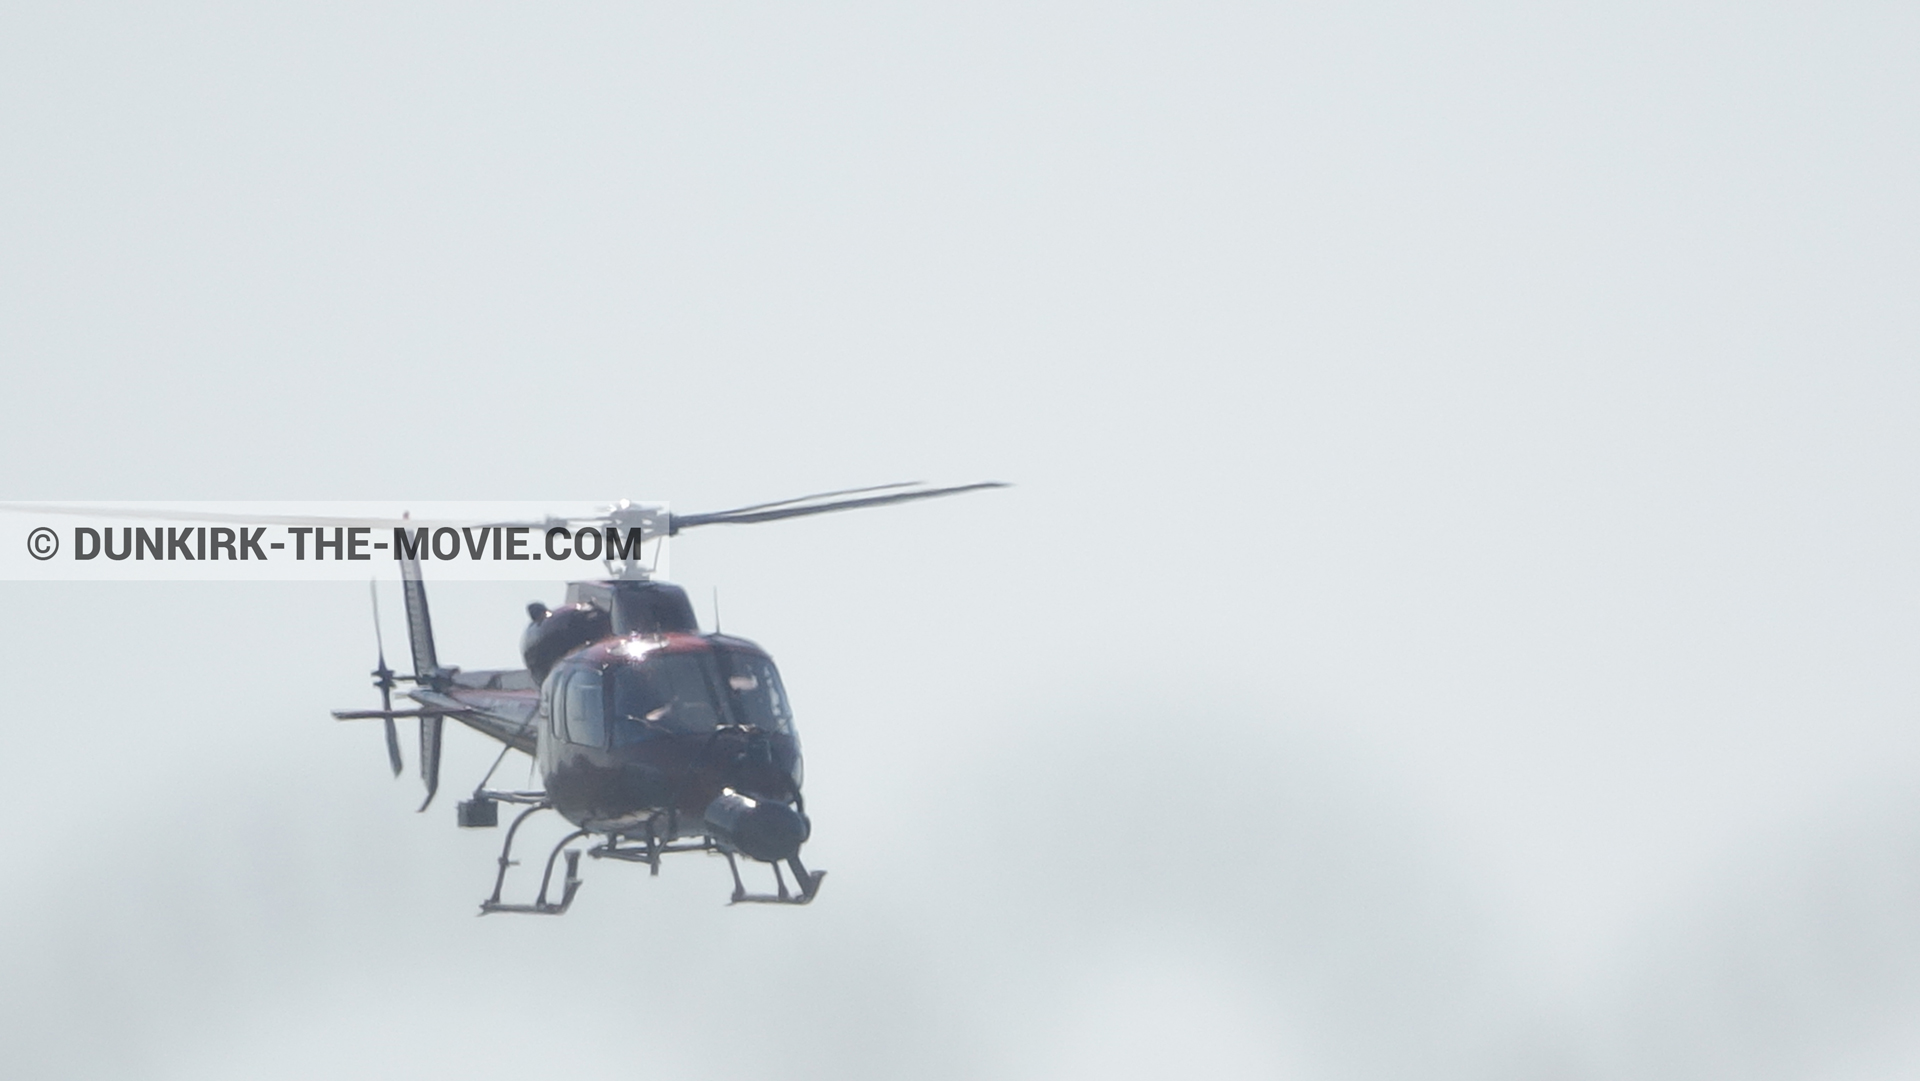 Picture with grey sky, helicopter camera,  from behind the scene of the Dunkirk movie by Nolan